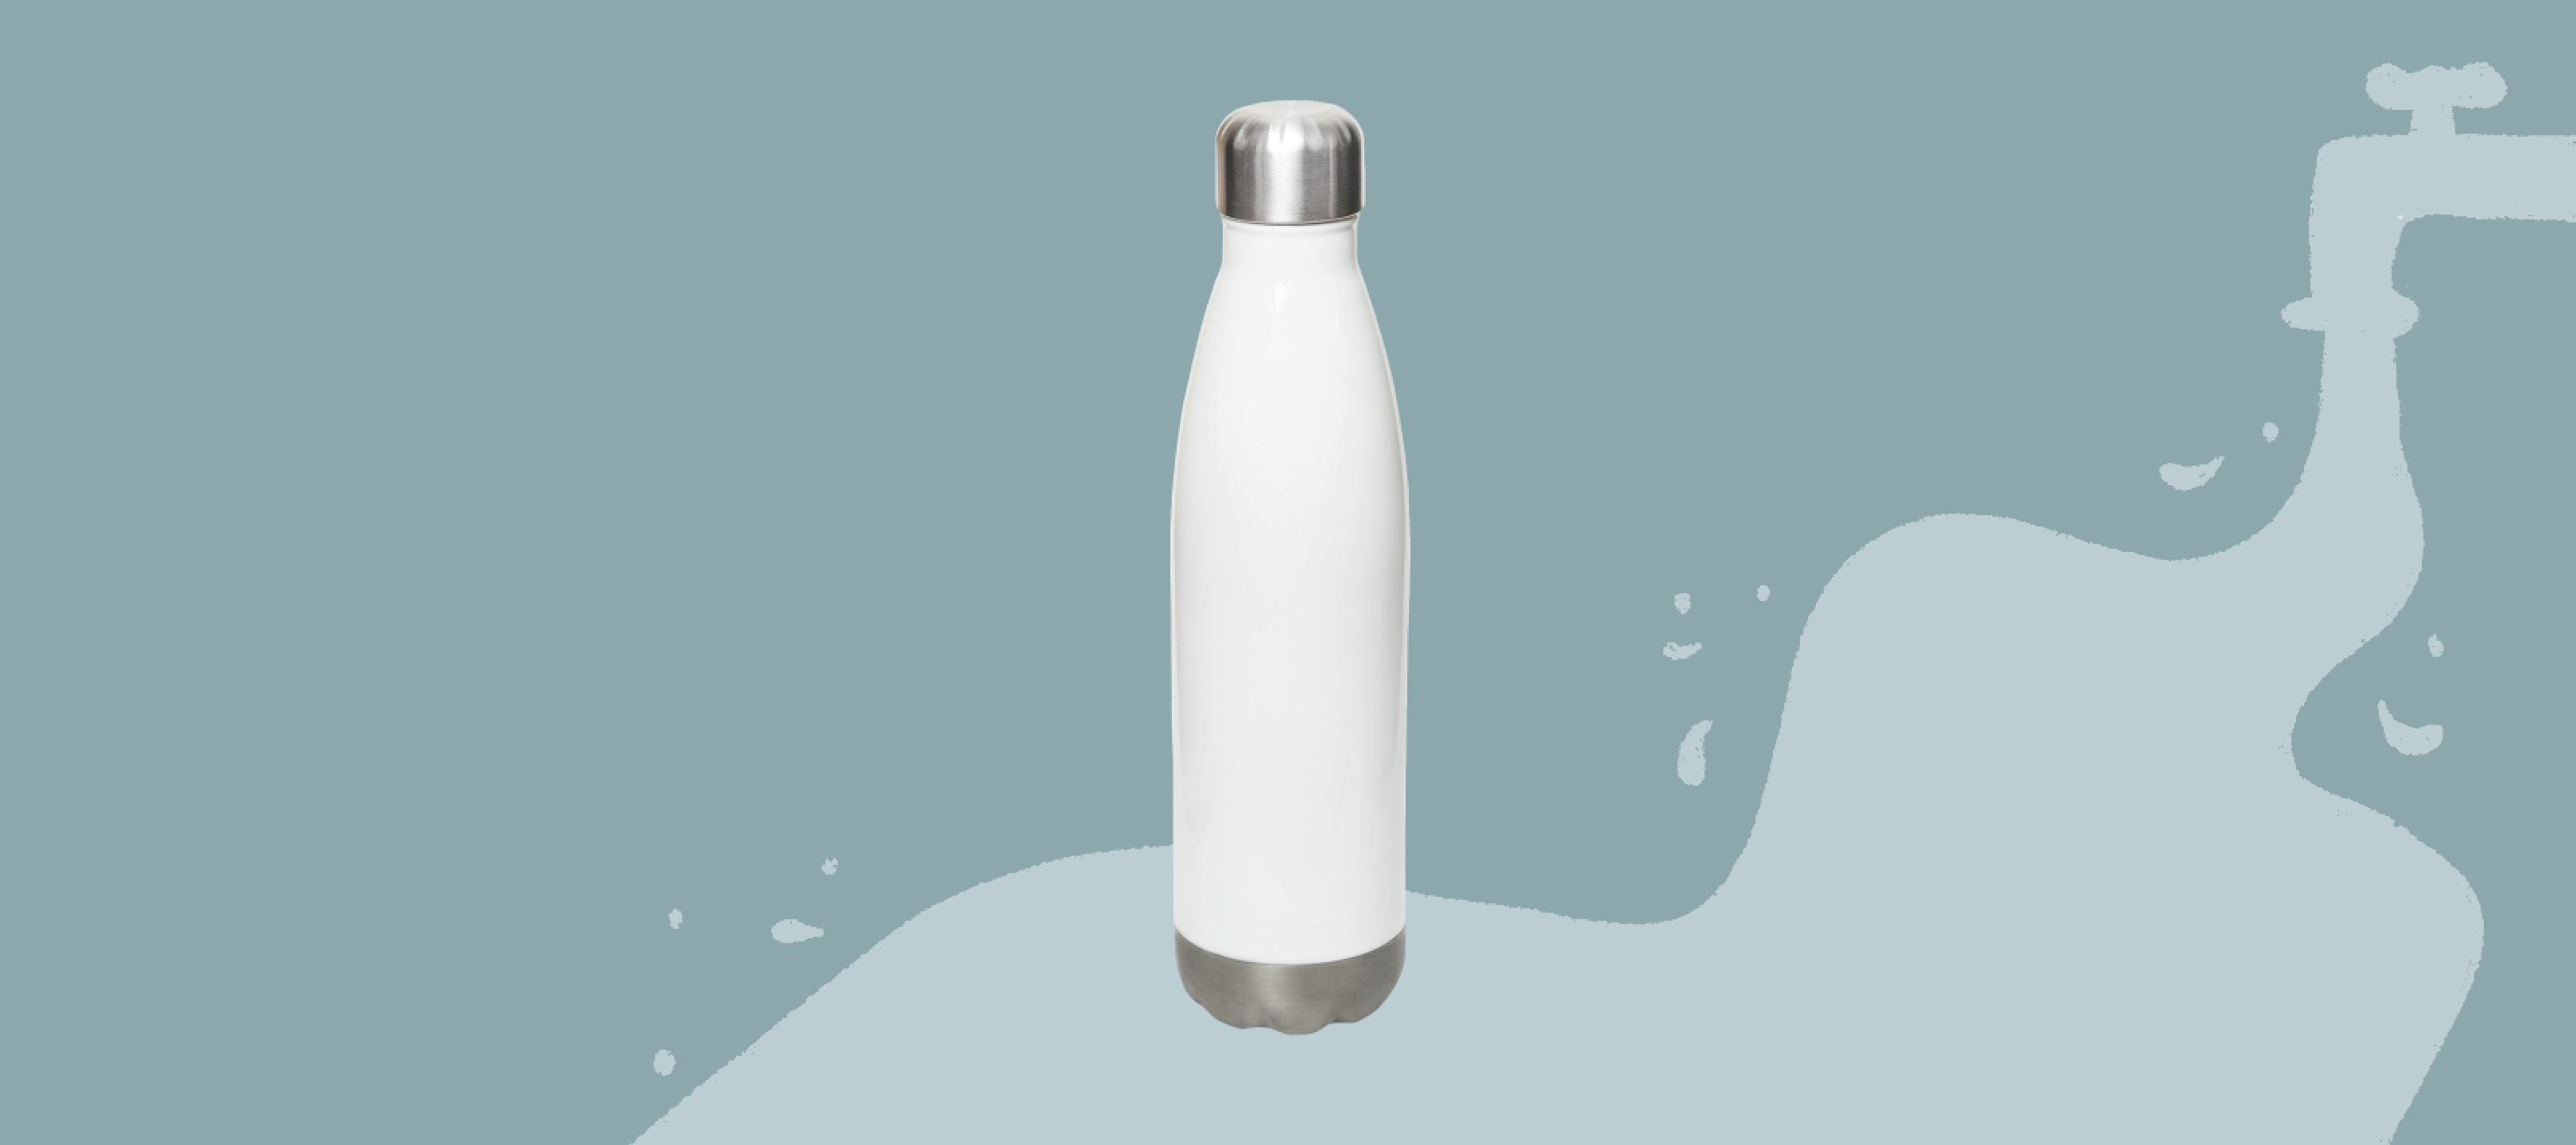 A white stainless steel water bottle.